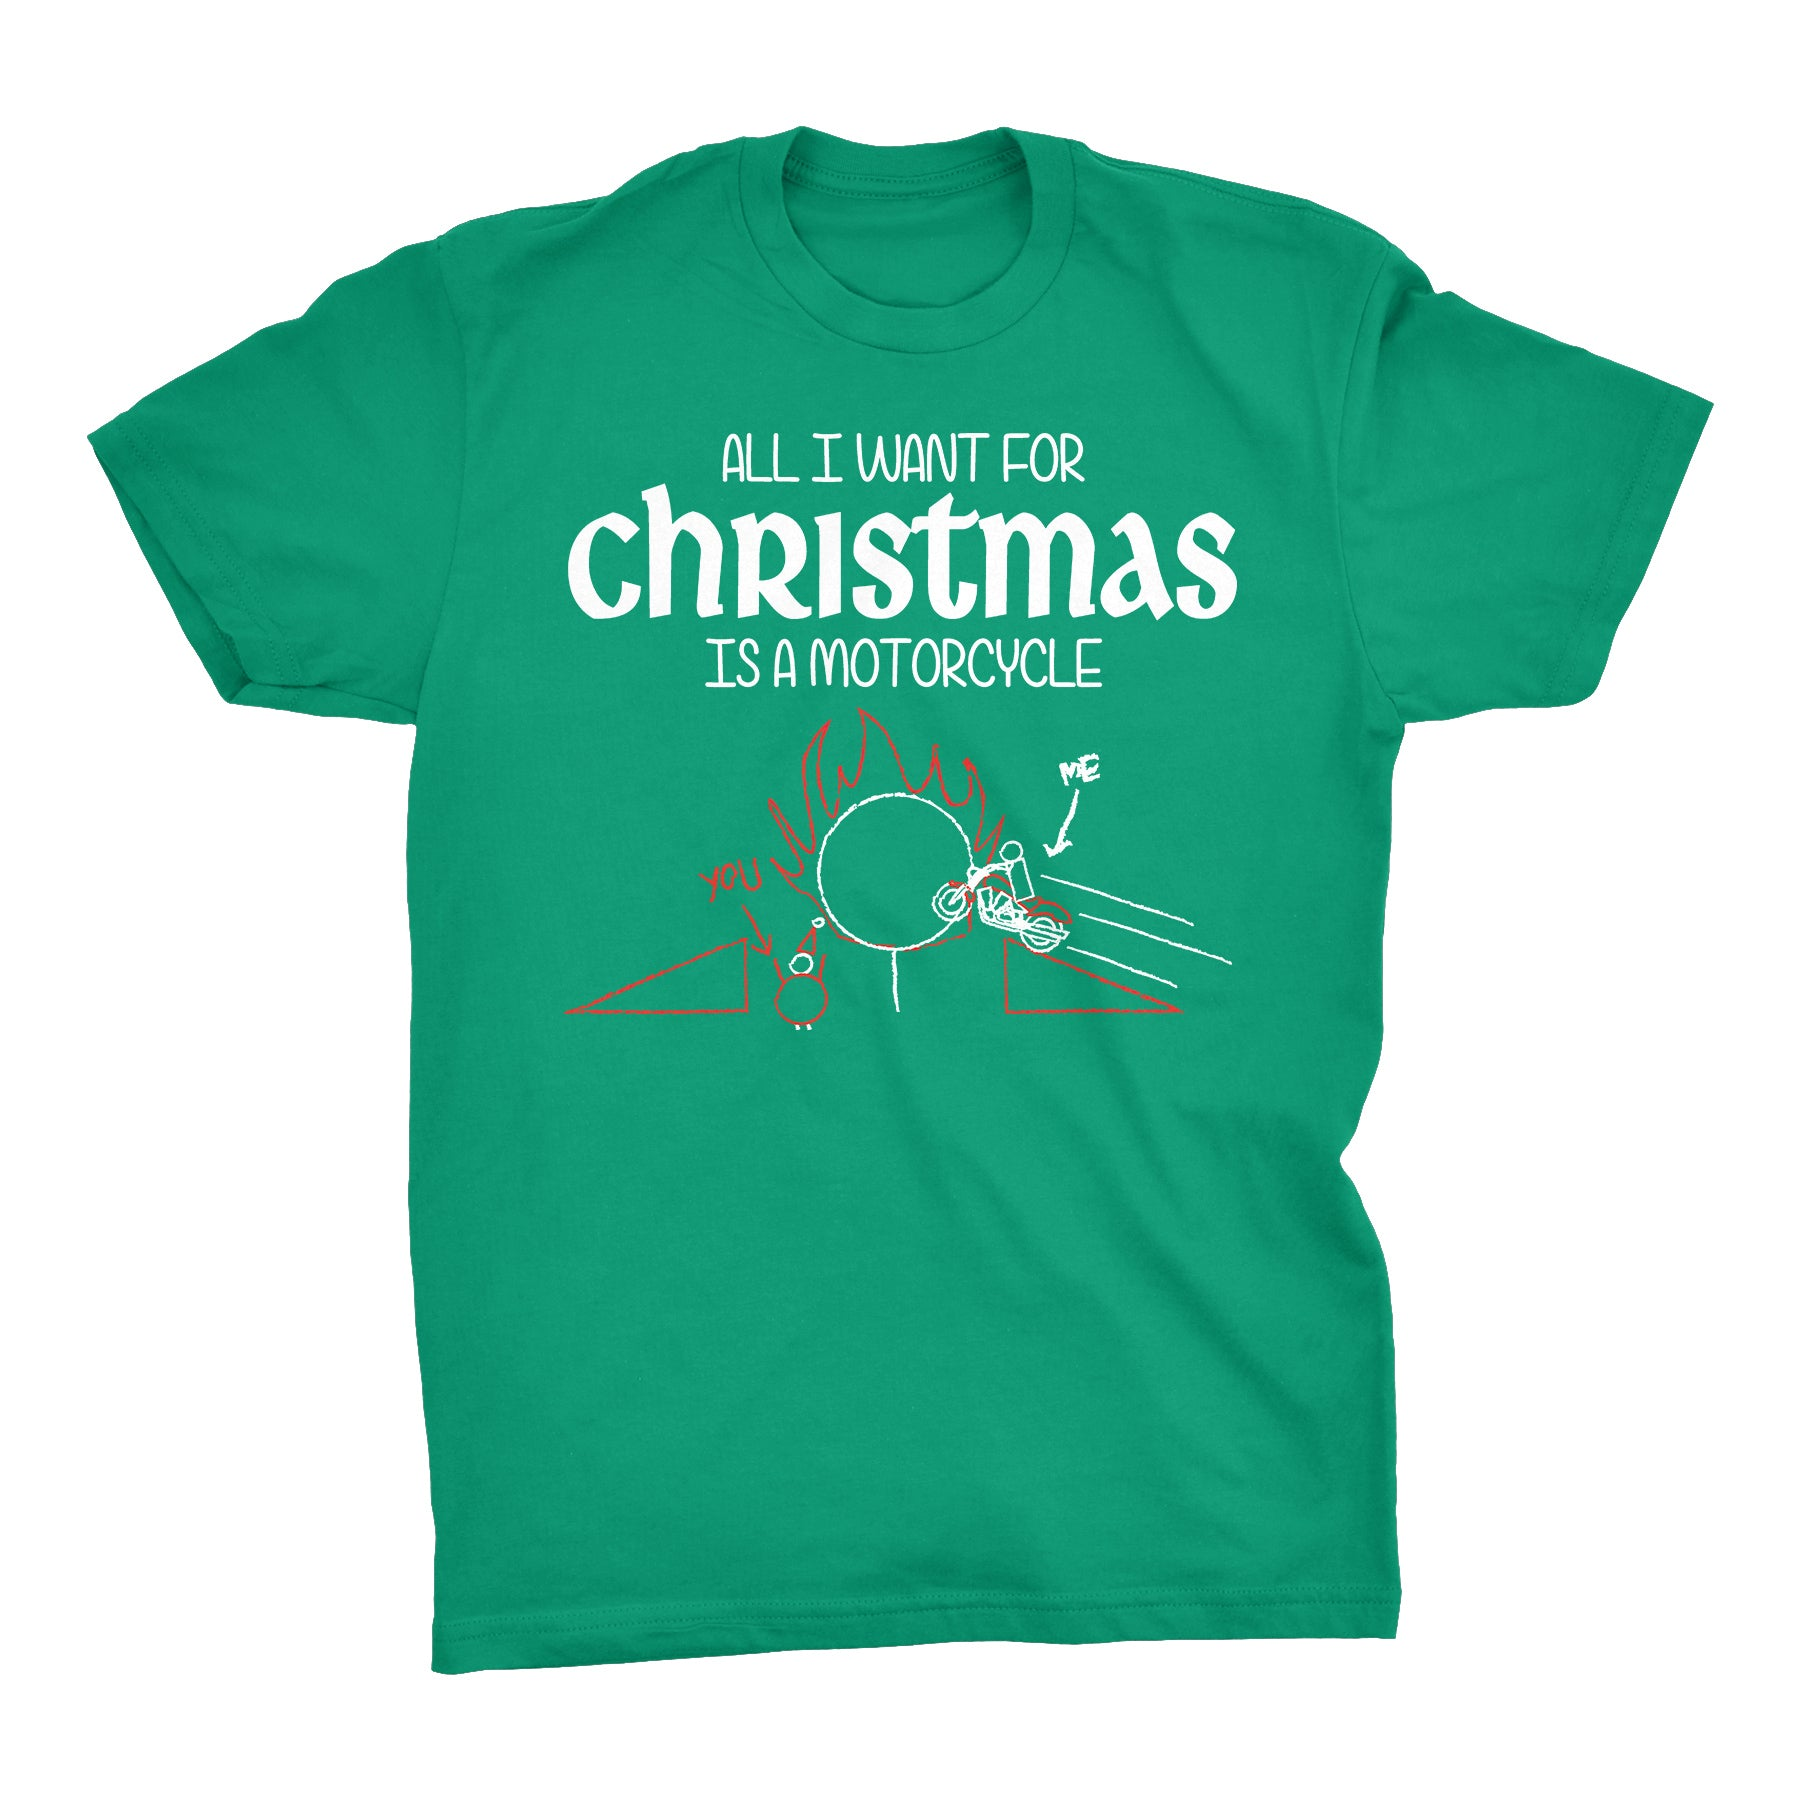 All I Want For Christmas Is A MOTORCYCLE-T-Shirt